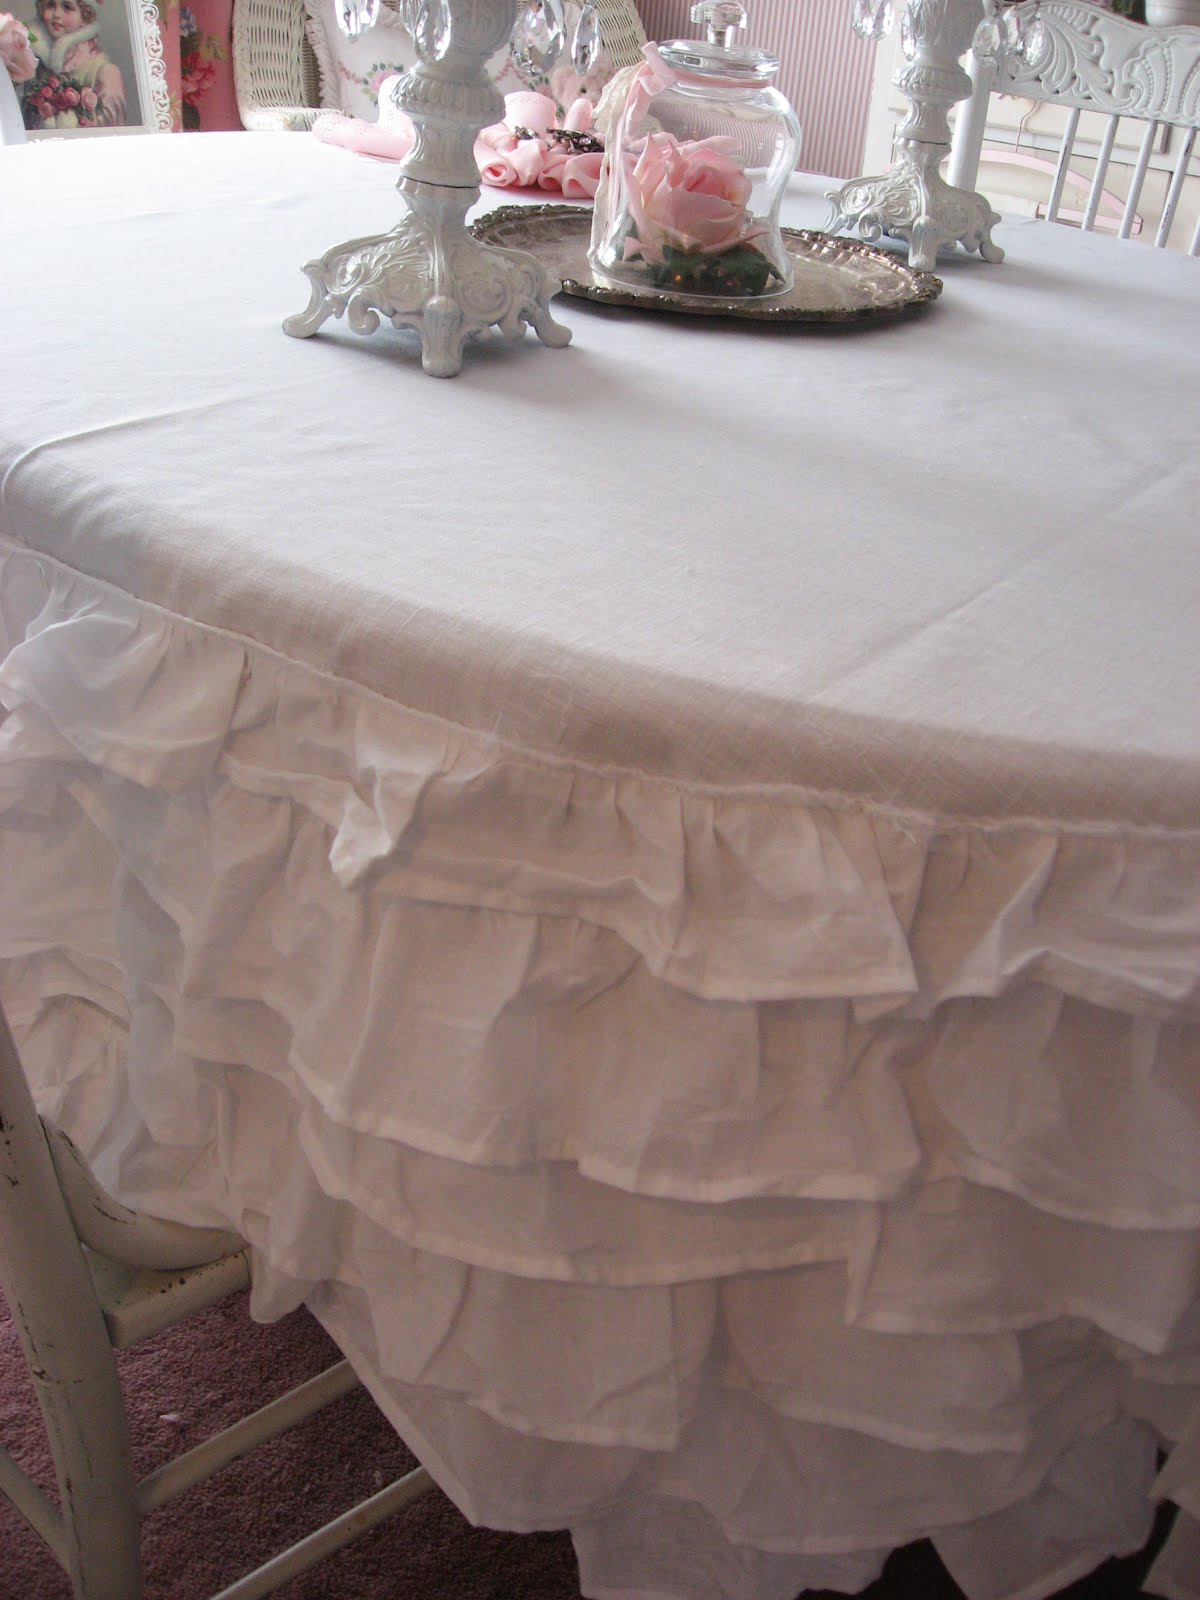 These Next Photos Are Just A Few More That I Took, While Taking Photos Of  The Tablecloth....my Dining Room Is My Favorite Room In The Whole House.